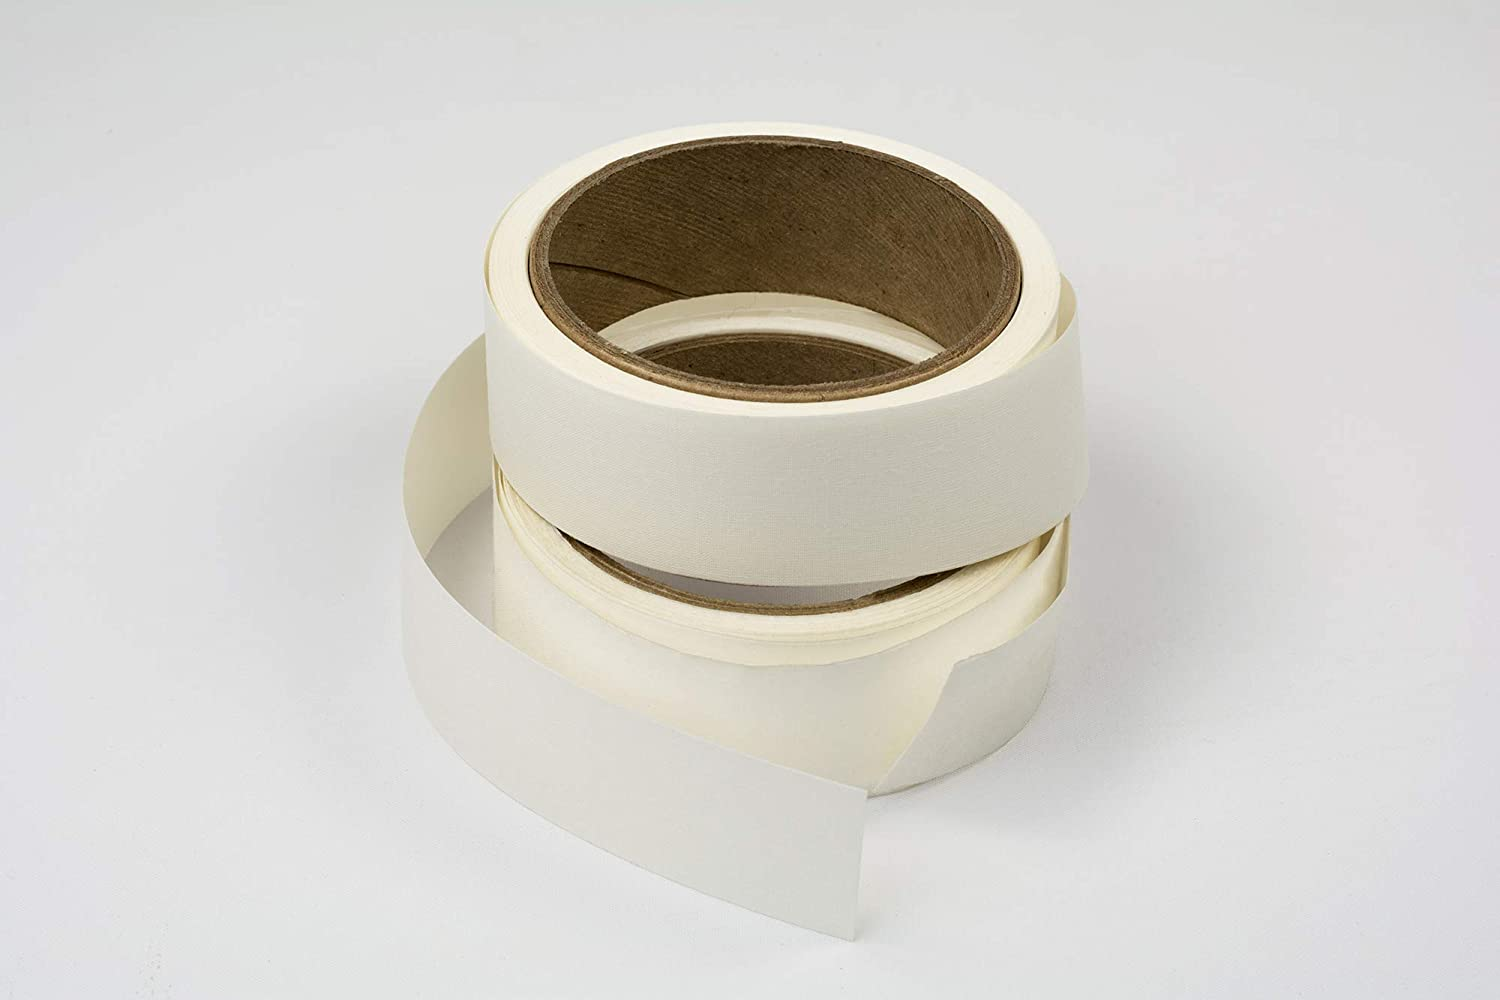 Lineco Self-Adhesive Hinging Tape Roll White, 1.25 inches X 150 Feet L533-1055 Acid-Free Linen Fabric